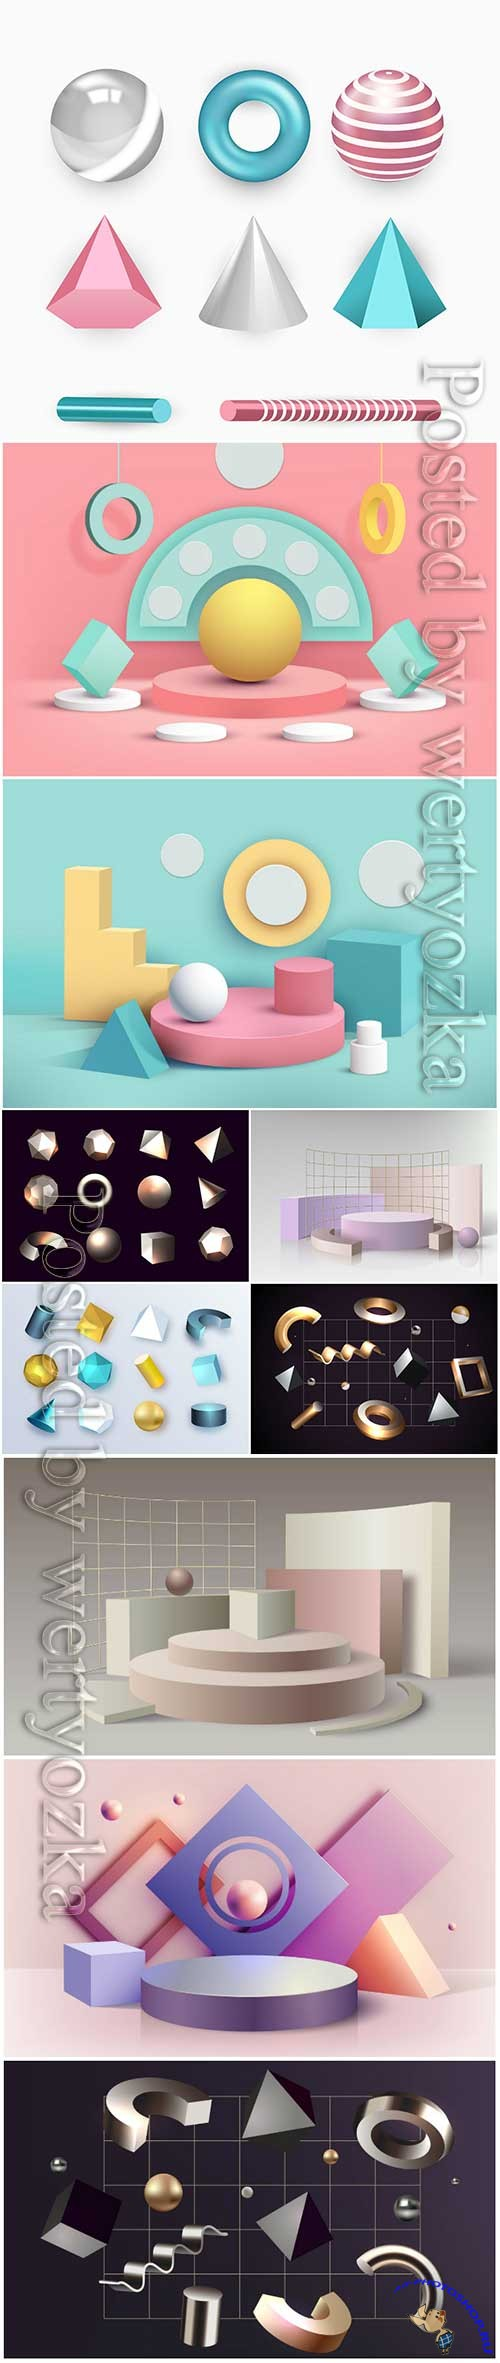 Geometric shapes in 3d effect vector illustration